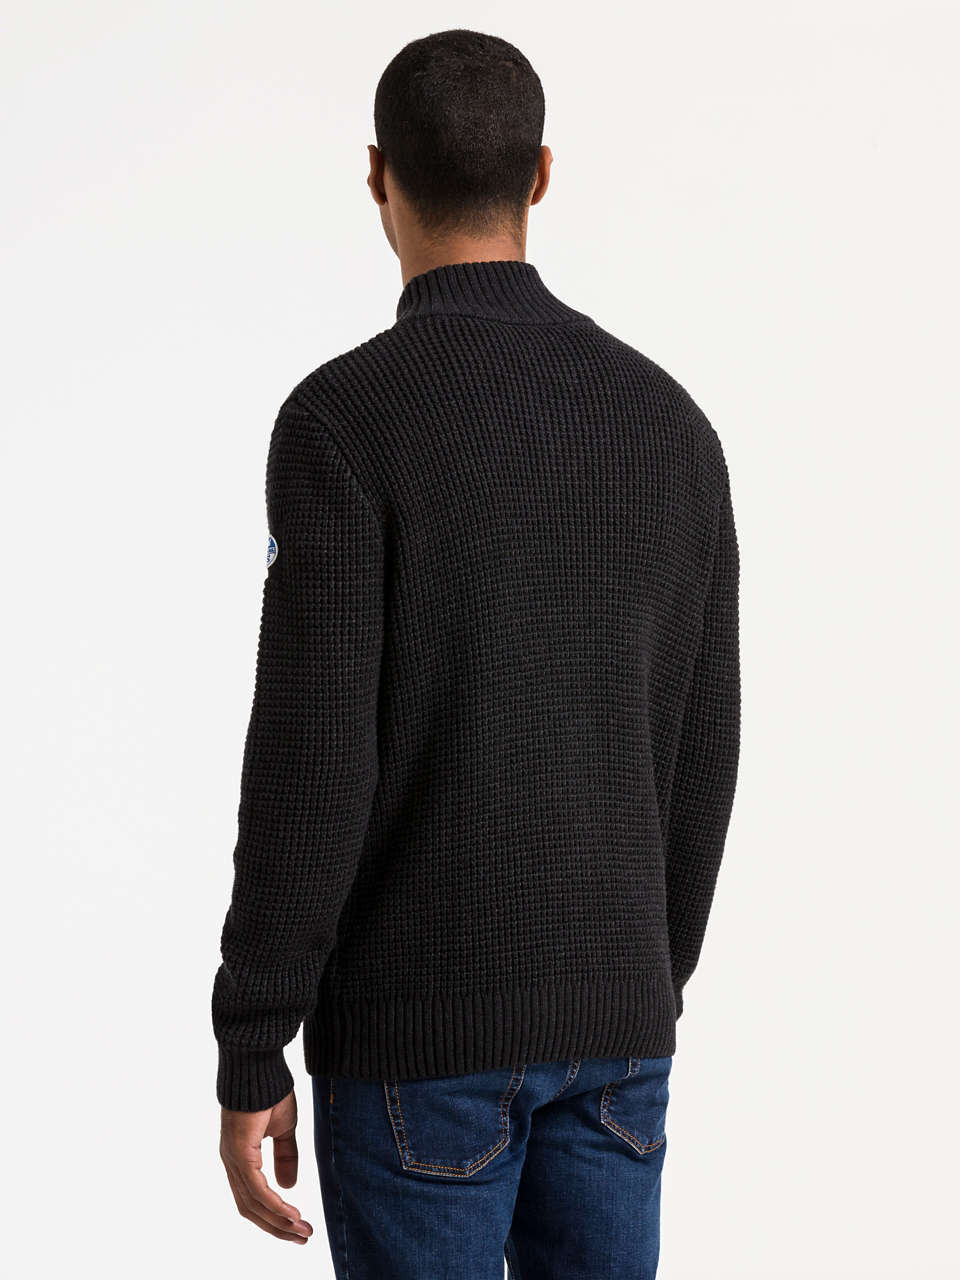 Full Sweater with Buttons